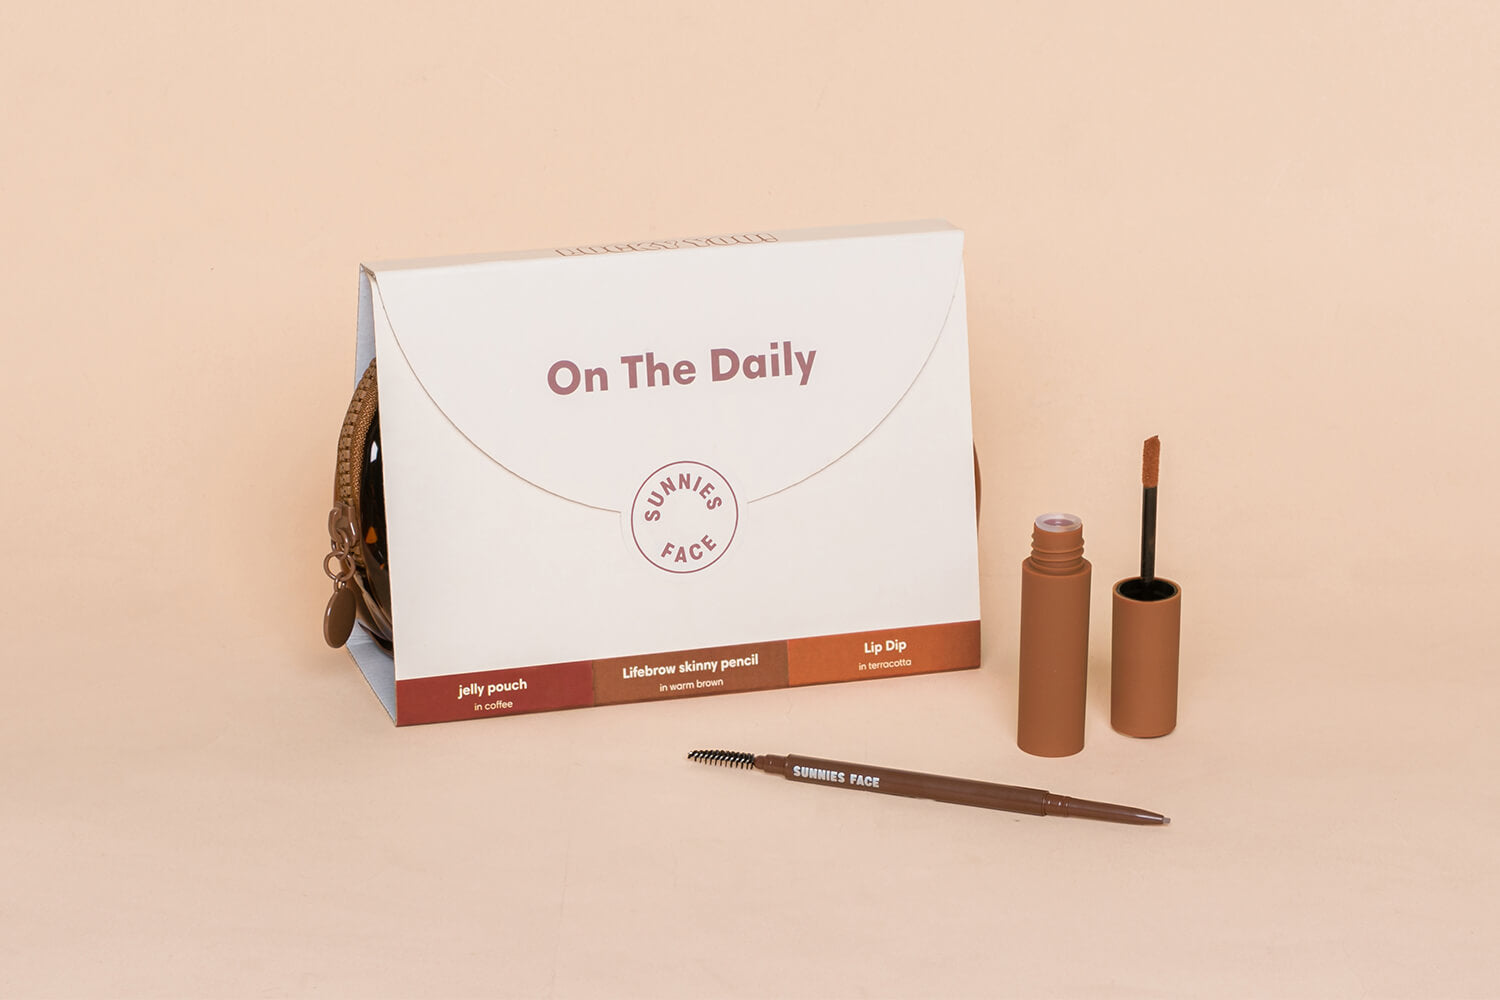 Sunnies Face Holiday Kit - On The Daily